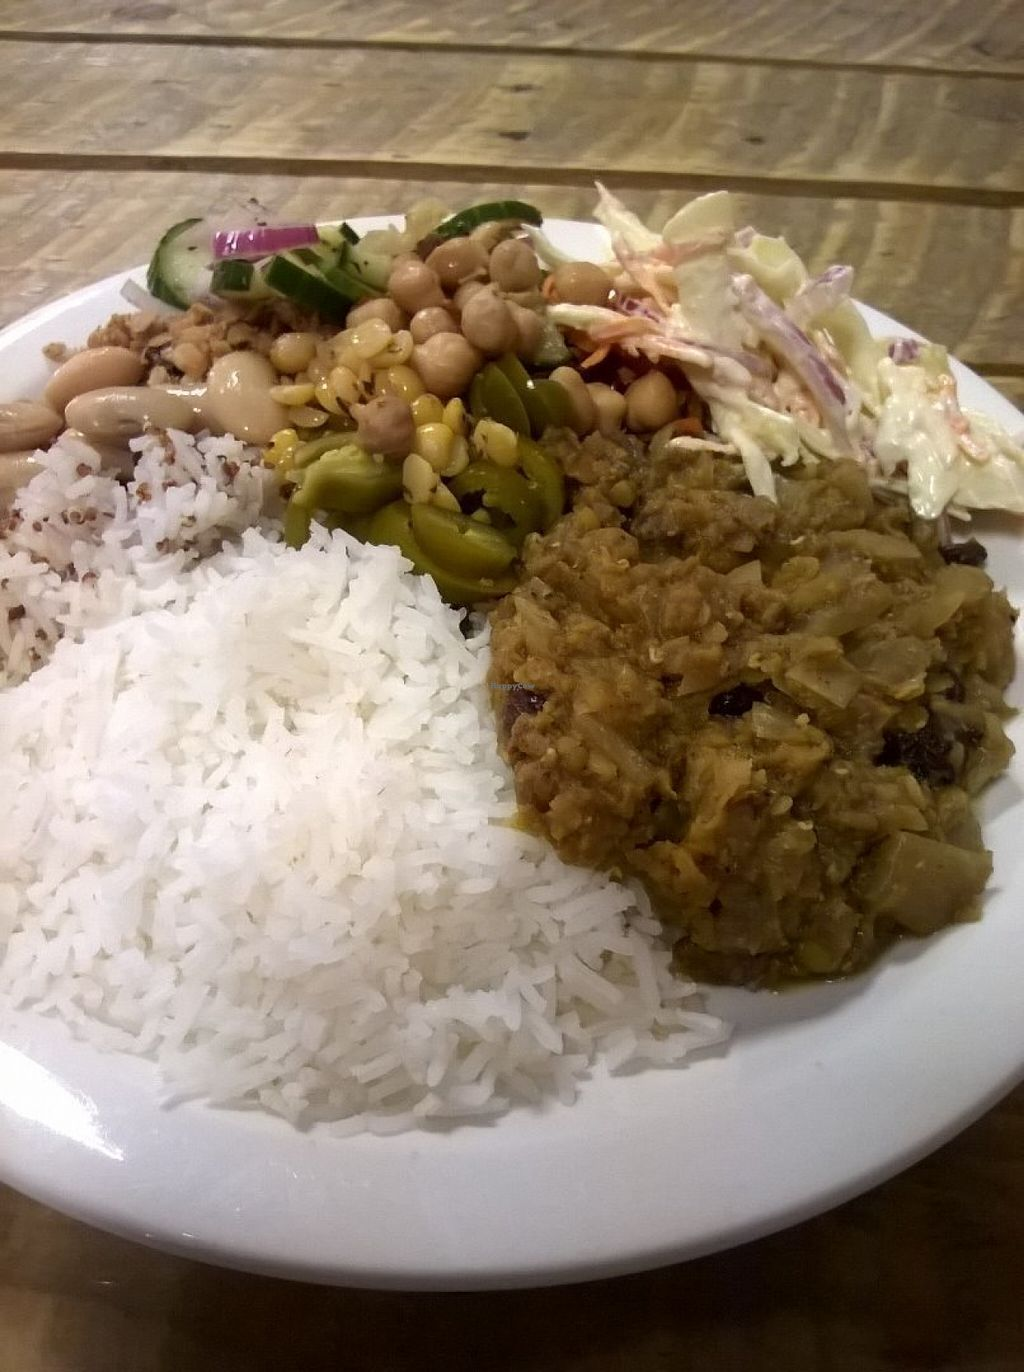 """Photo of Super Natural Kitchen  by <a href=""""/members/profile/deadpledge"""">deadpledge</a> <br/>Lentil daal curry with rice side salad <br/> July 18, 2016  - <a href='/contact/abuse/image/74502/160732'>Report</a>"""